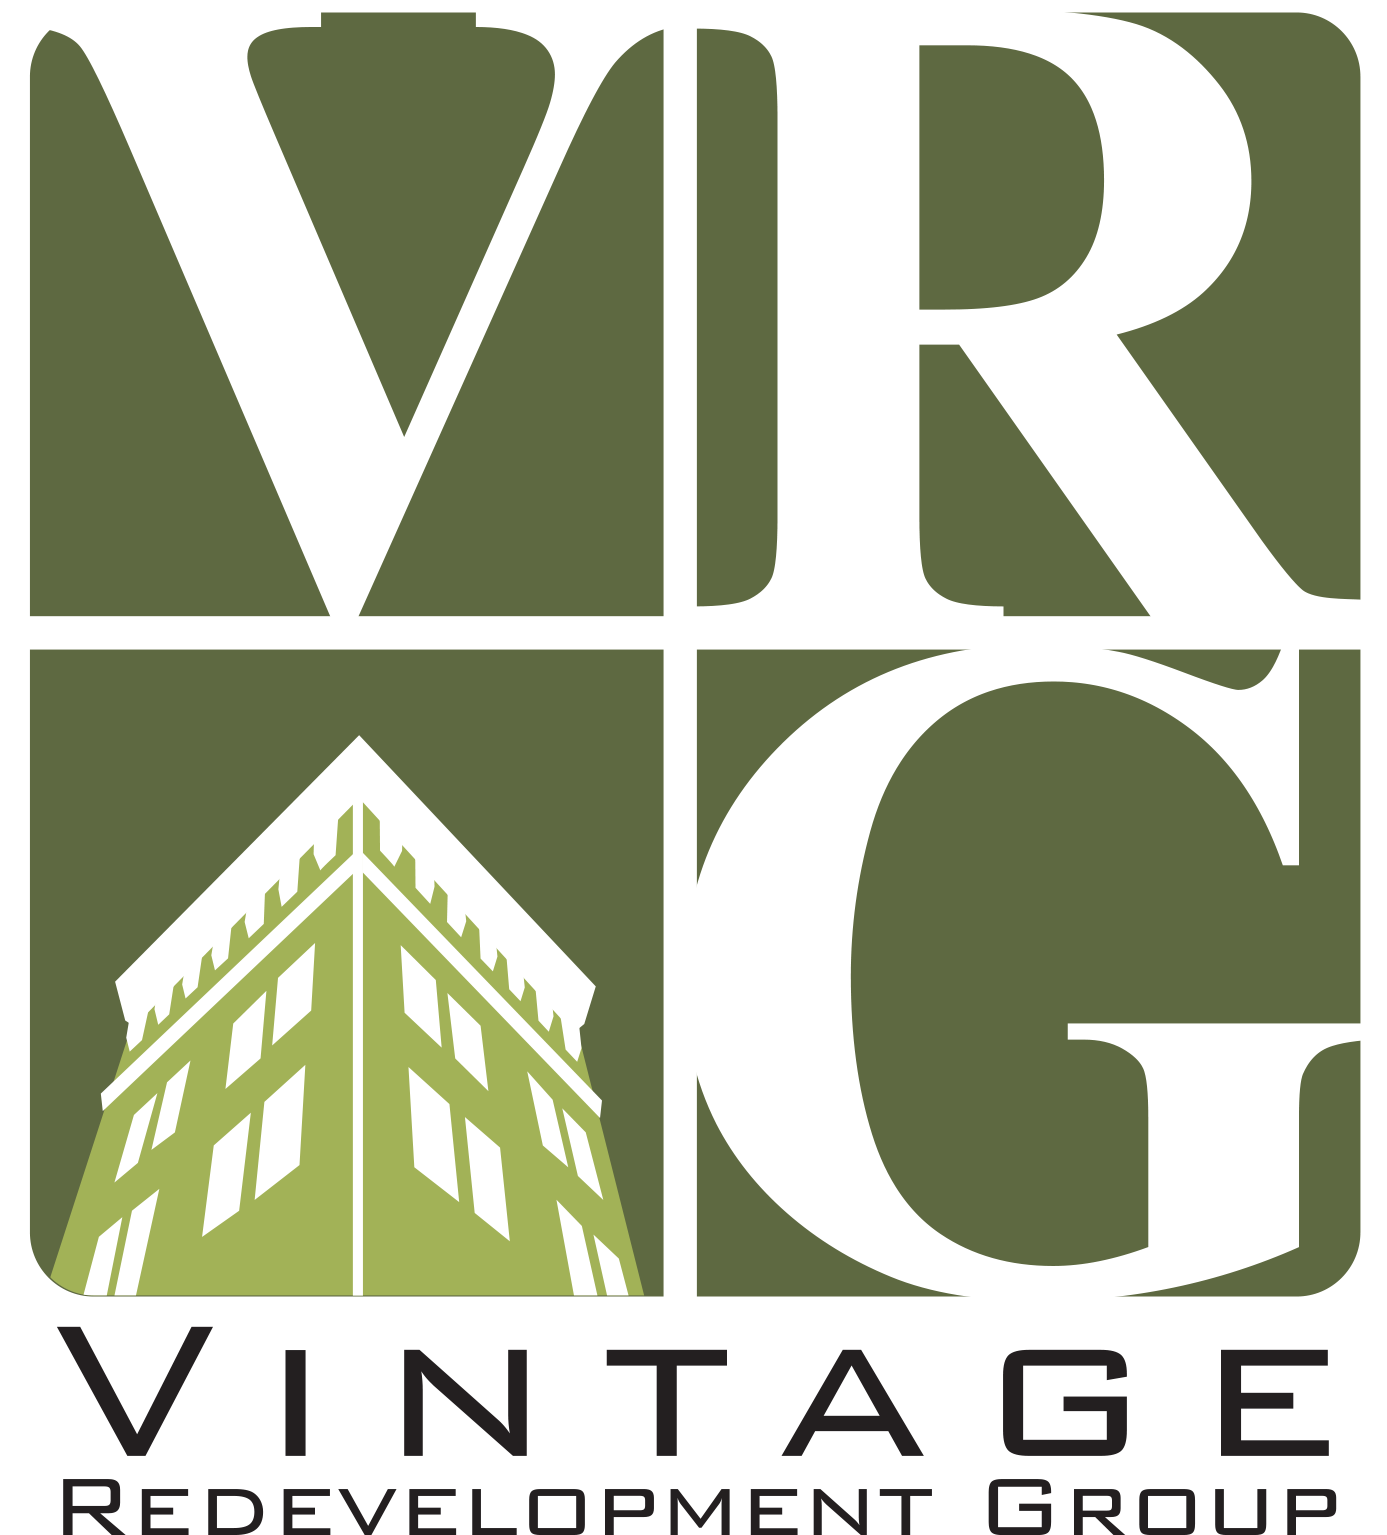 Vintage Redevelopment Group, LLC